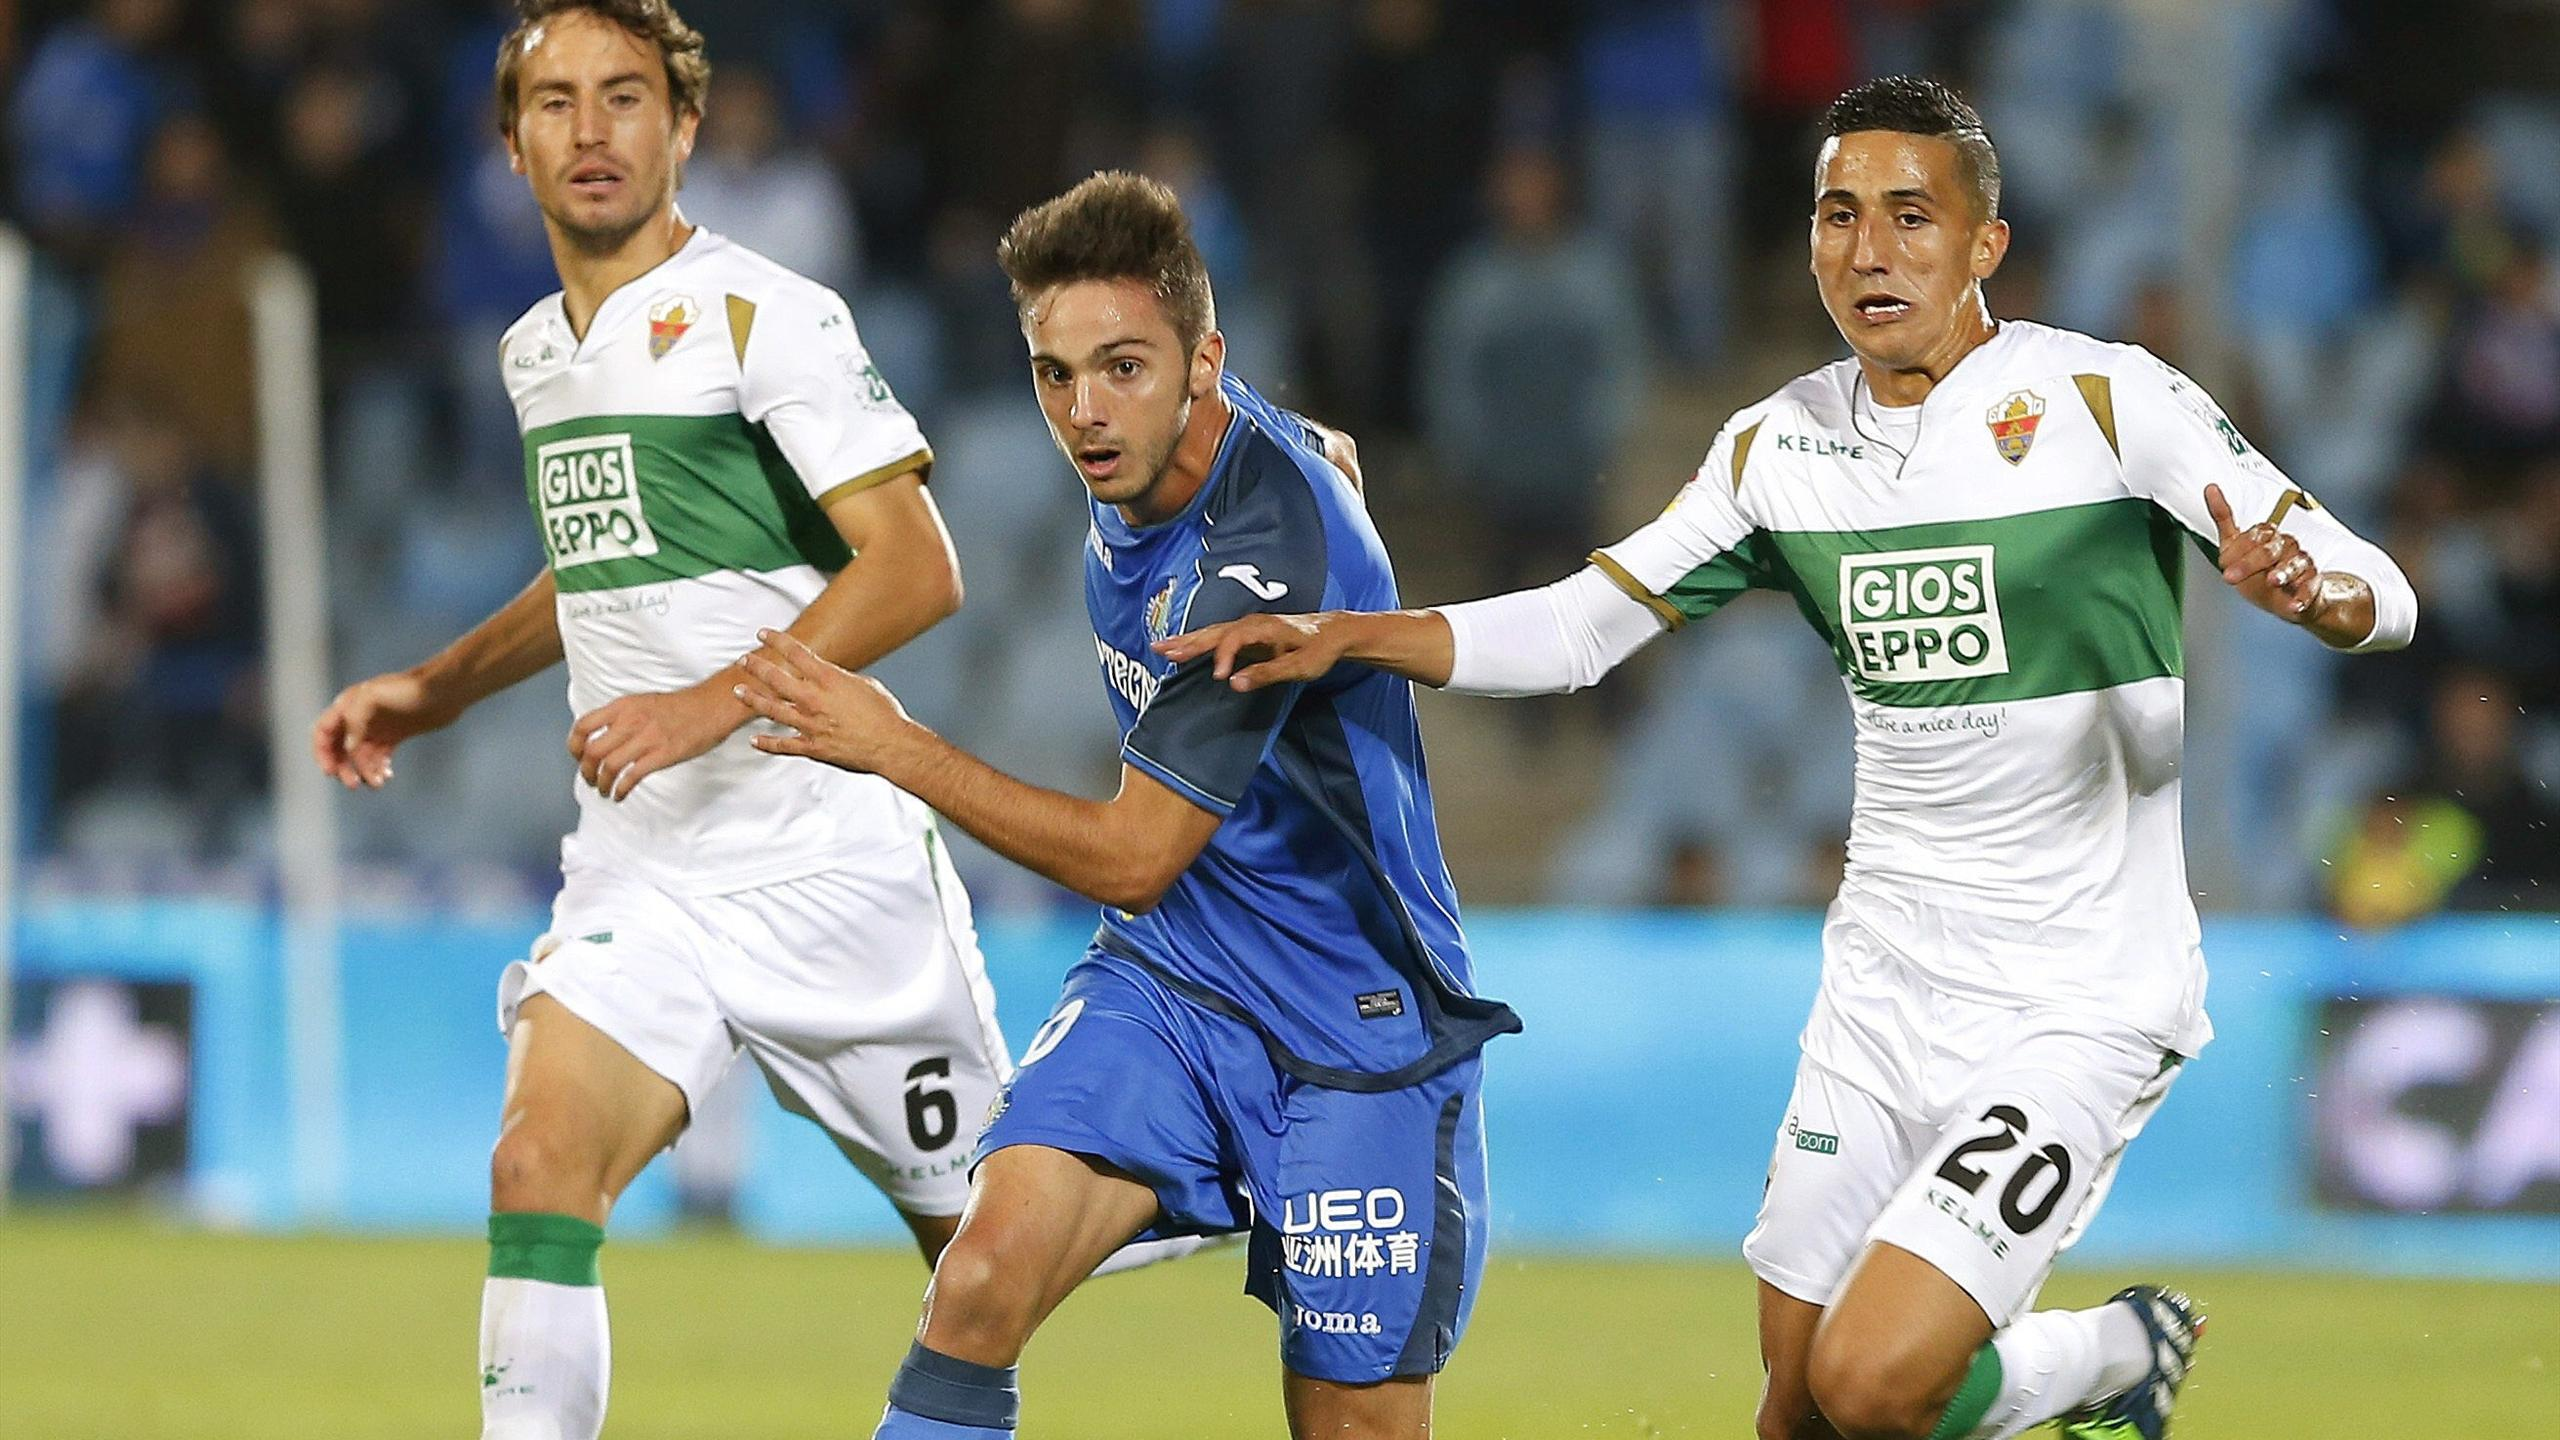 Video: Elche vs Getafe